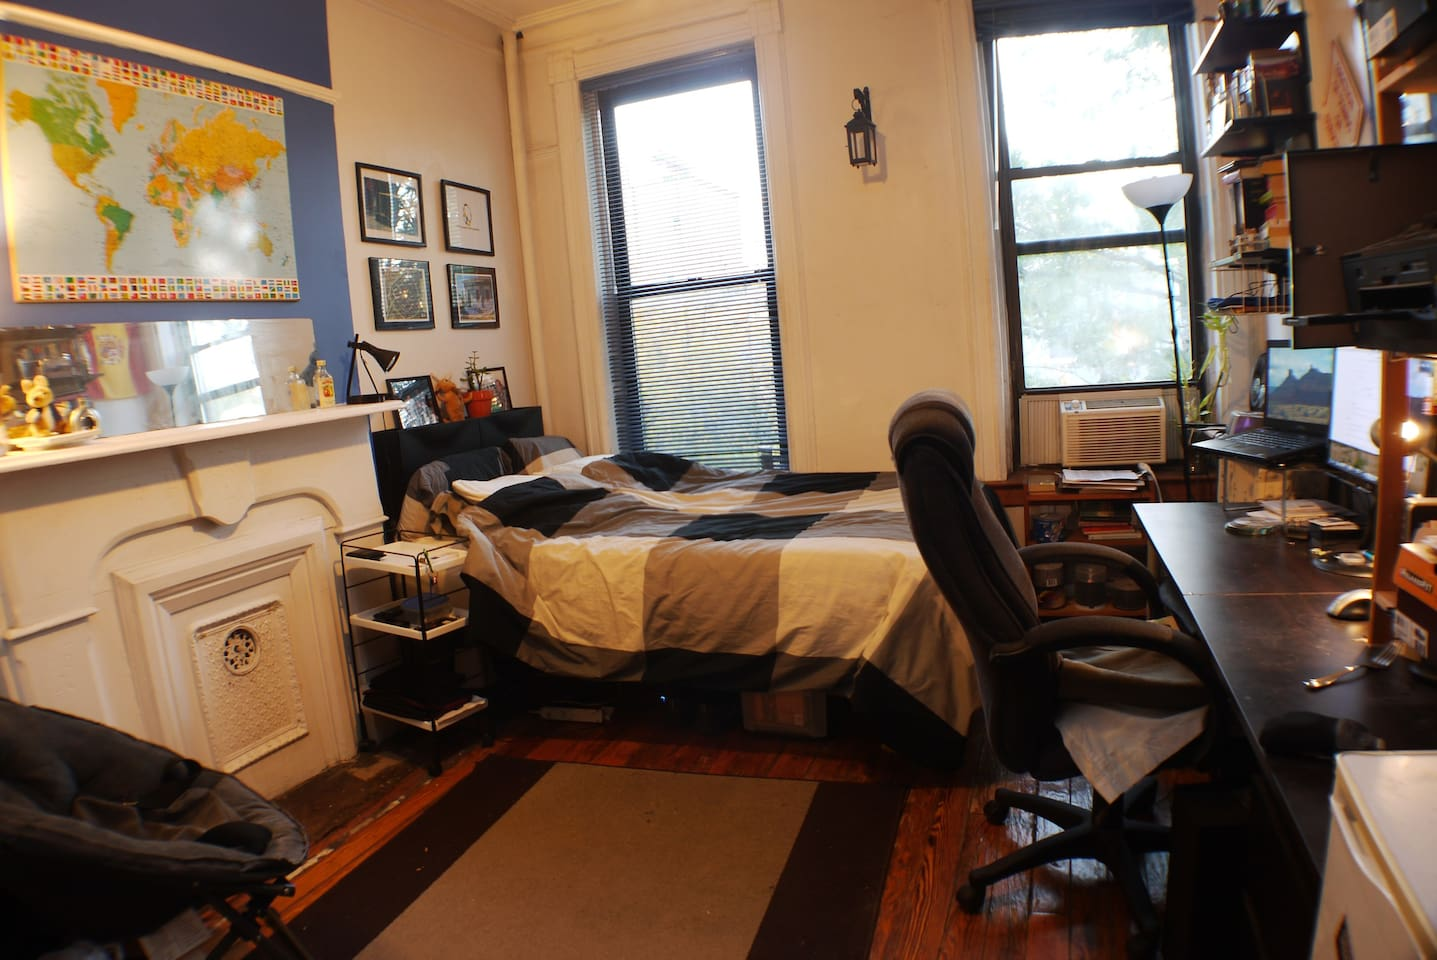 Large bedroom with double bed, ornamental fireplace, desk, TV/monitor, and personal fridge